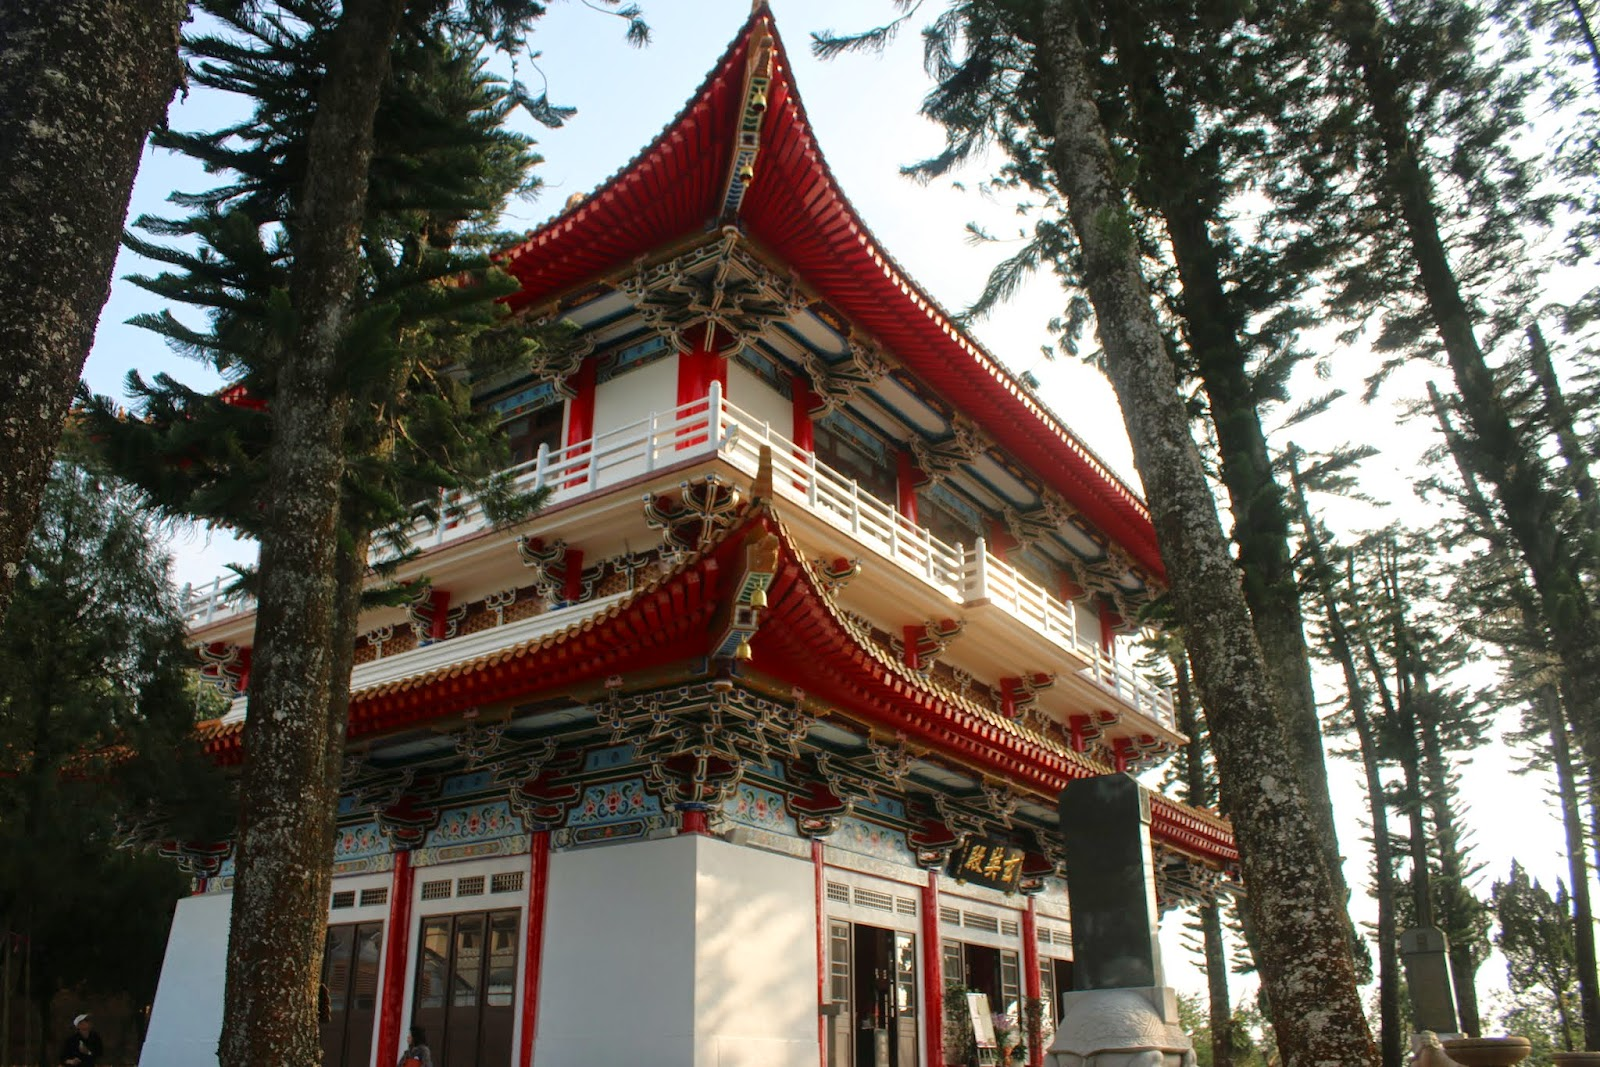 Beautiful Chinese architecture design from the side view of Xuanzang Temple nearby Sun Moon Lake in Nantou County of Taiwan